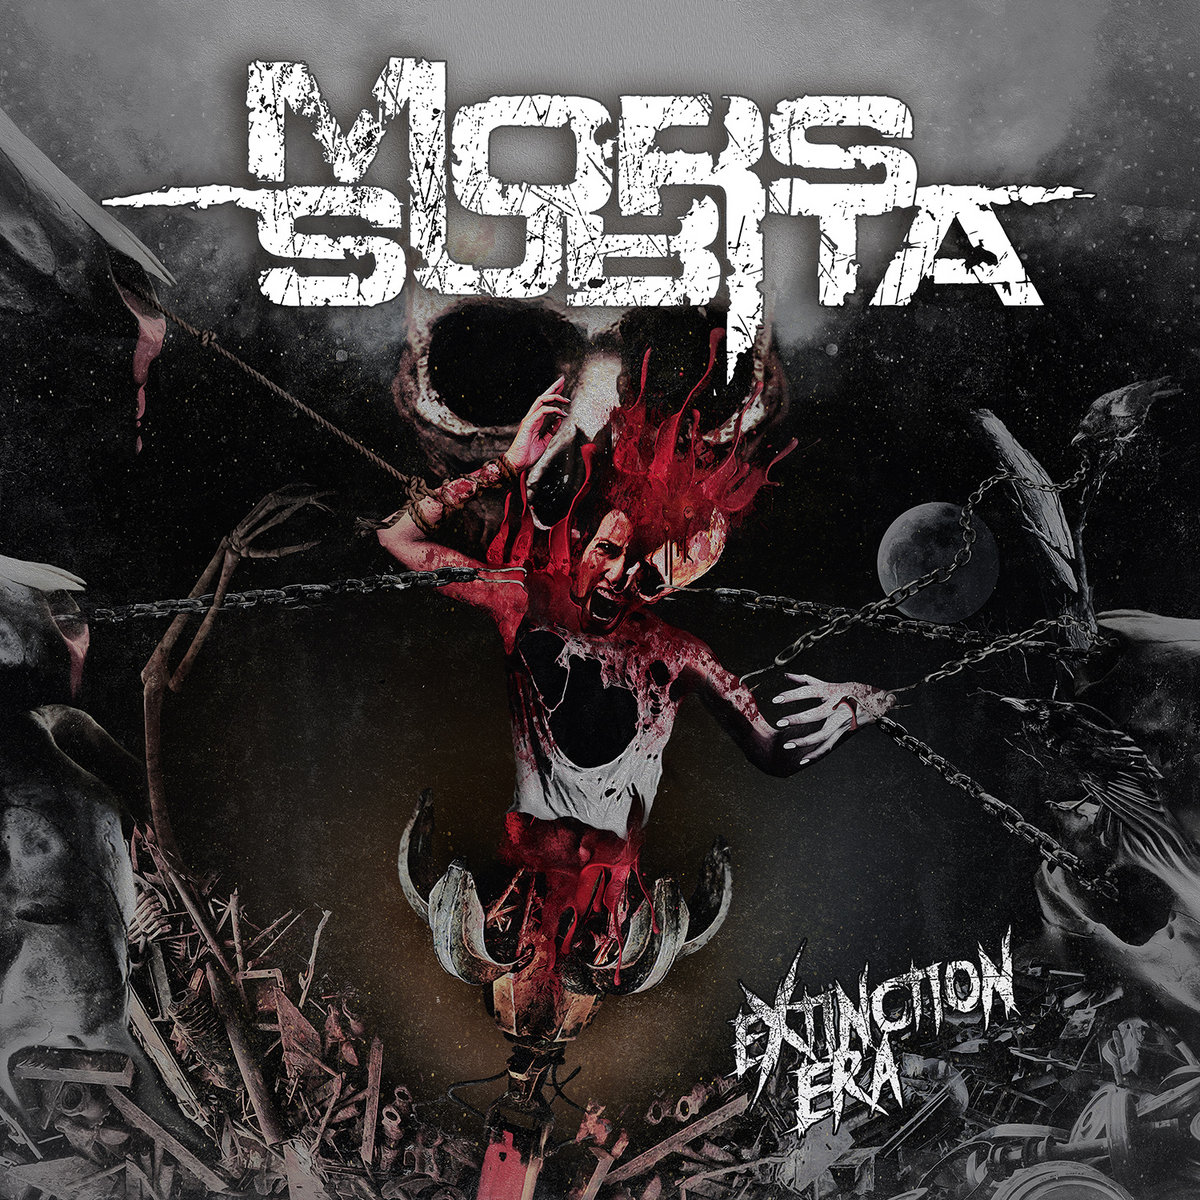 REVIEW: Mors Subita – Extinction Era